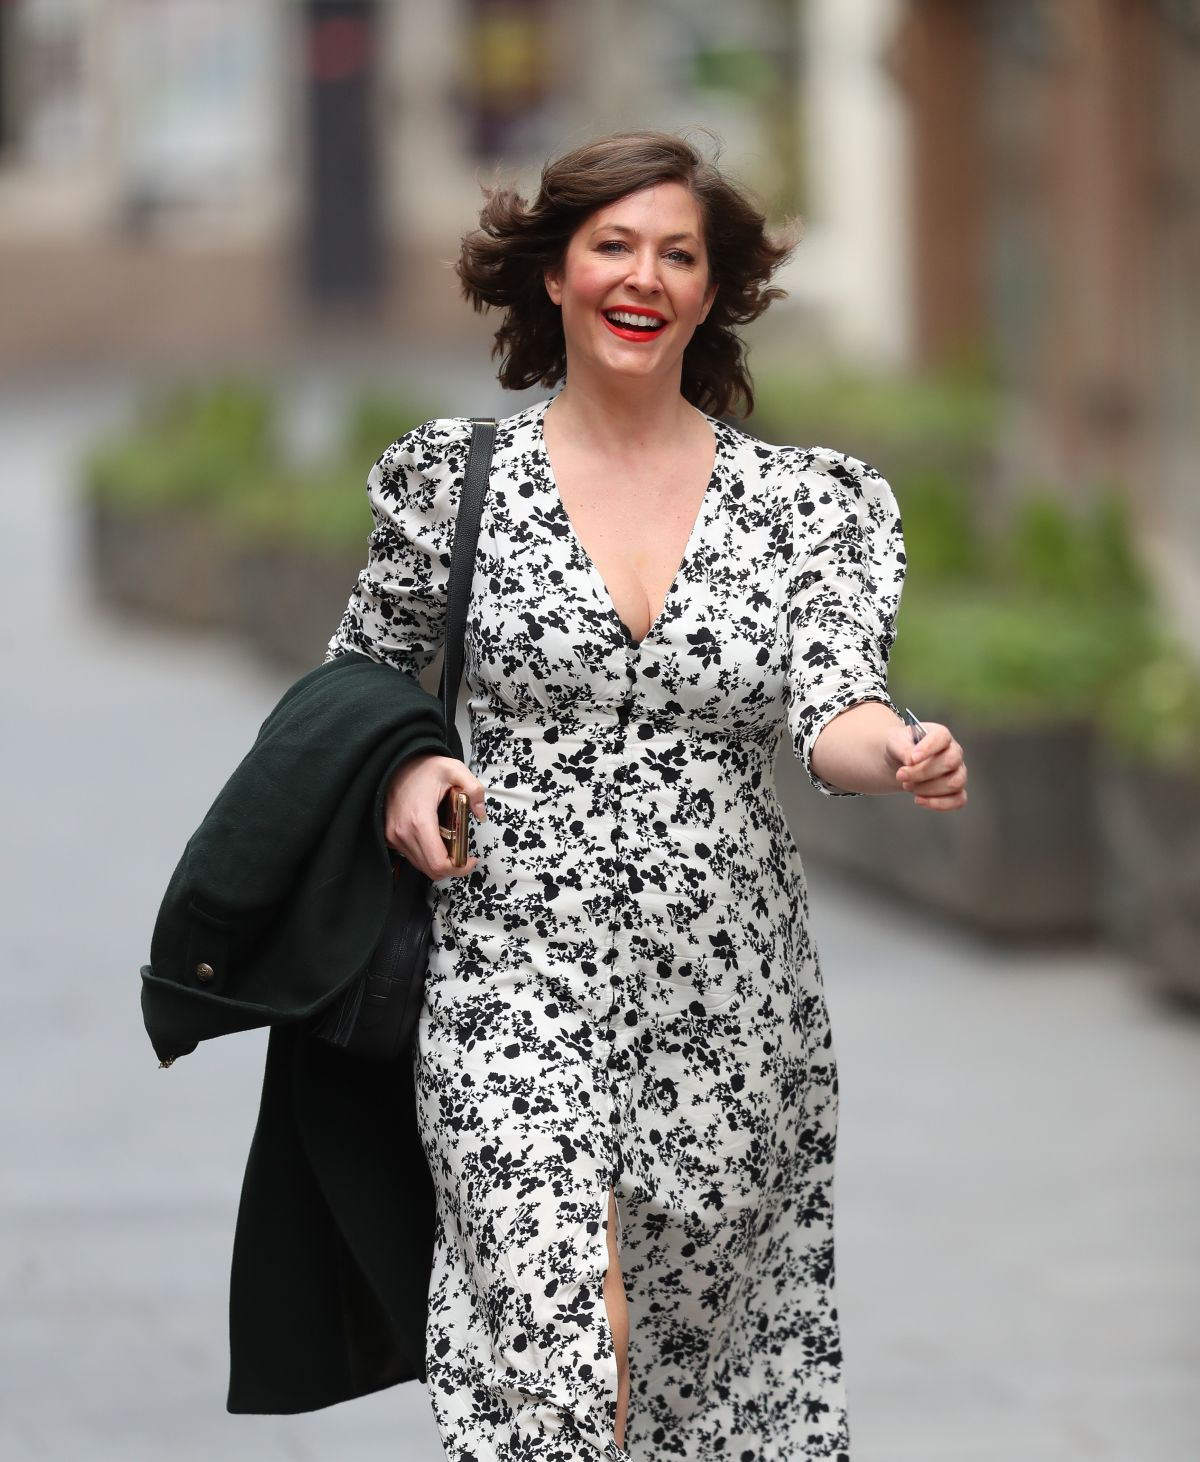 Lucy Horobin Makes Busty Exit In High Split Floral Dress